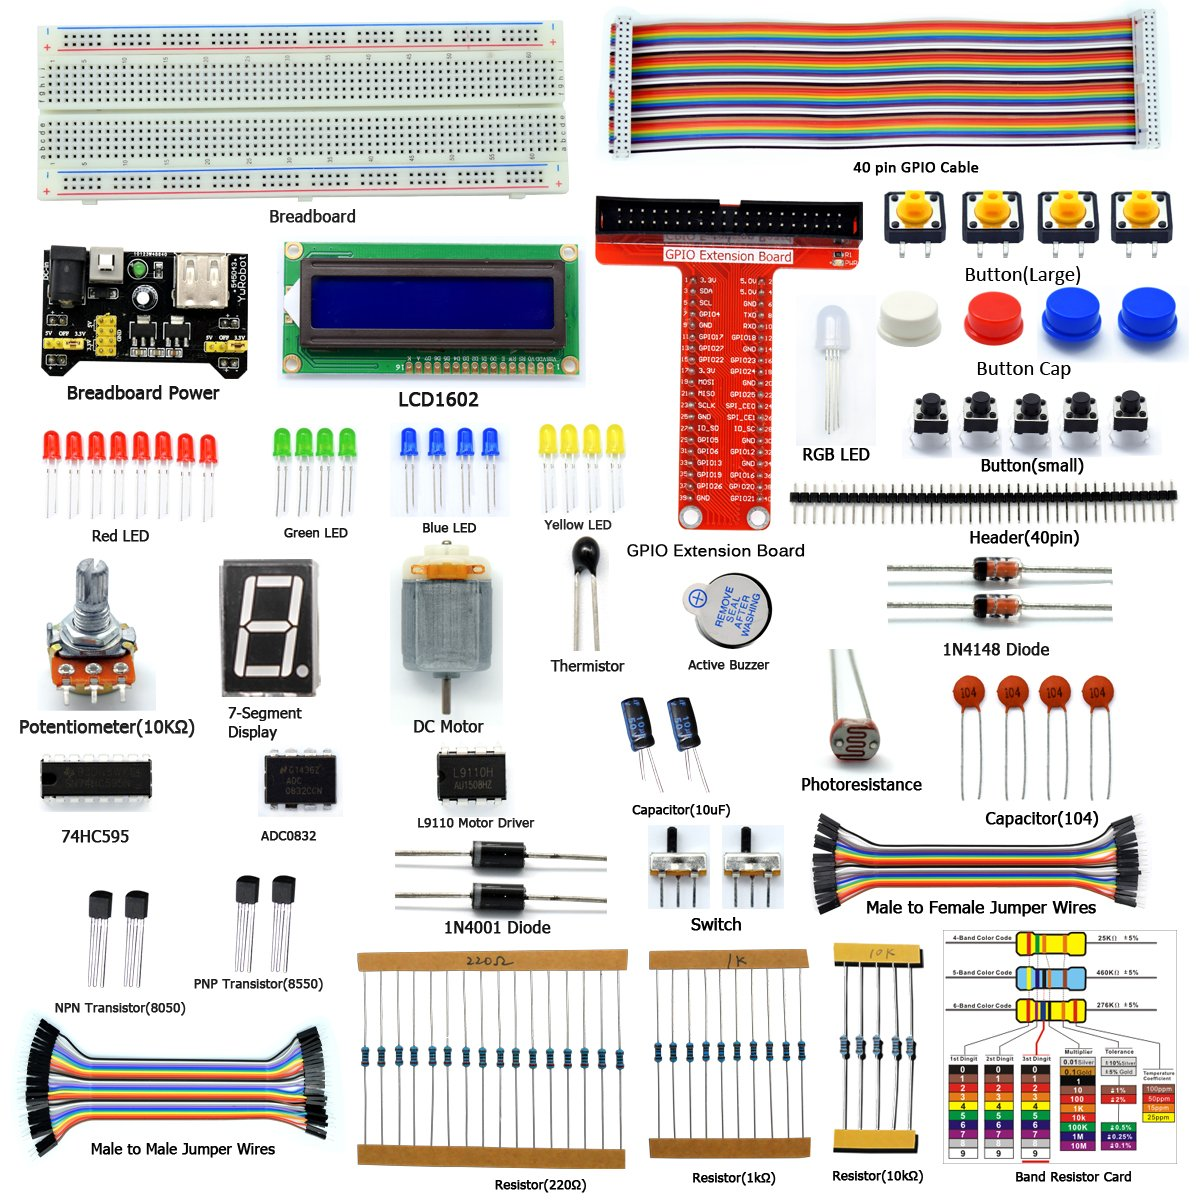 Adeept Starter Kit For Raspberry Pi 3 2 Model B Lcd1602 Motor Temperature Sensor Circuit Using 1n4148 Diode Diagram C And Python Code Beginner With User Manual Guidebook Toys